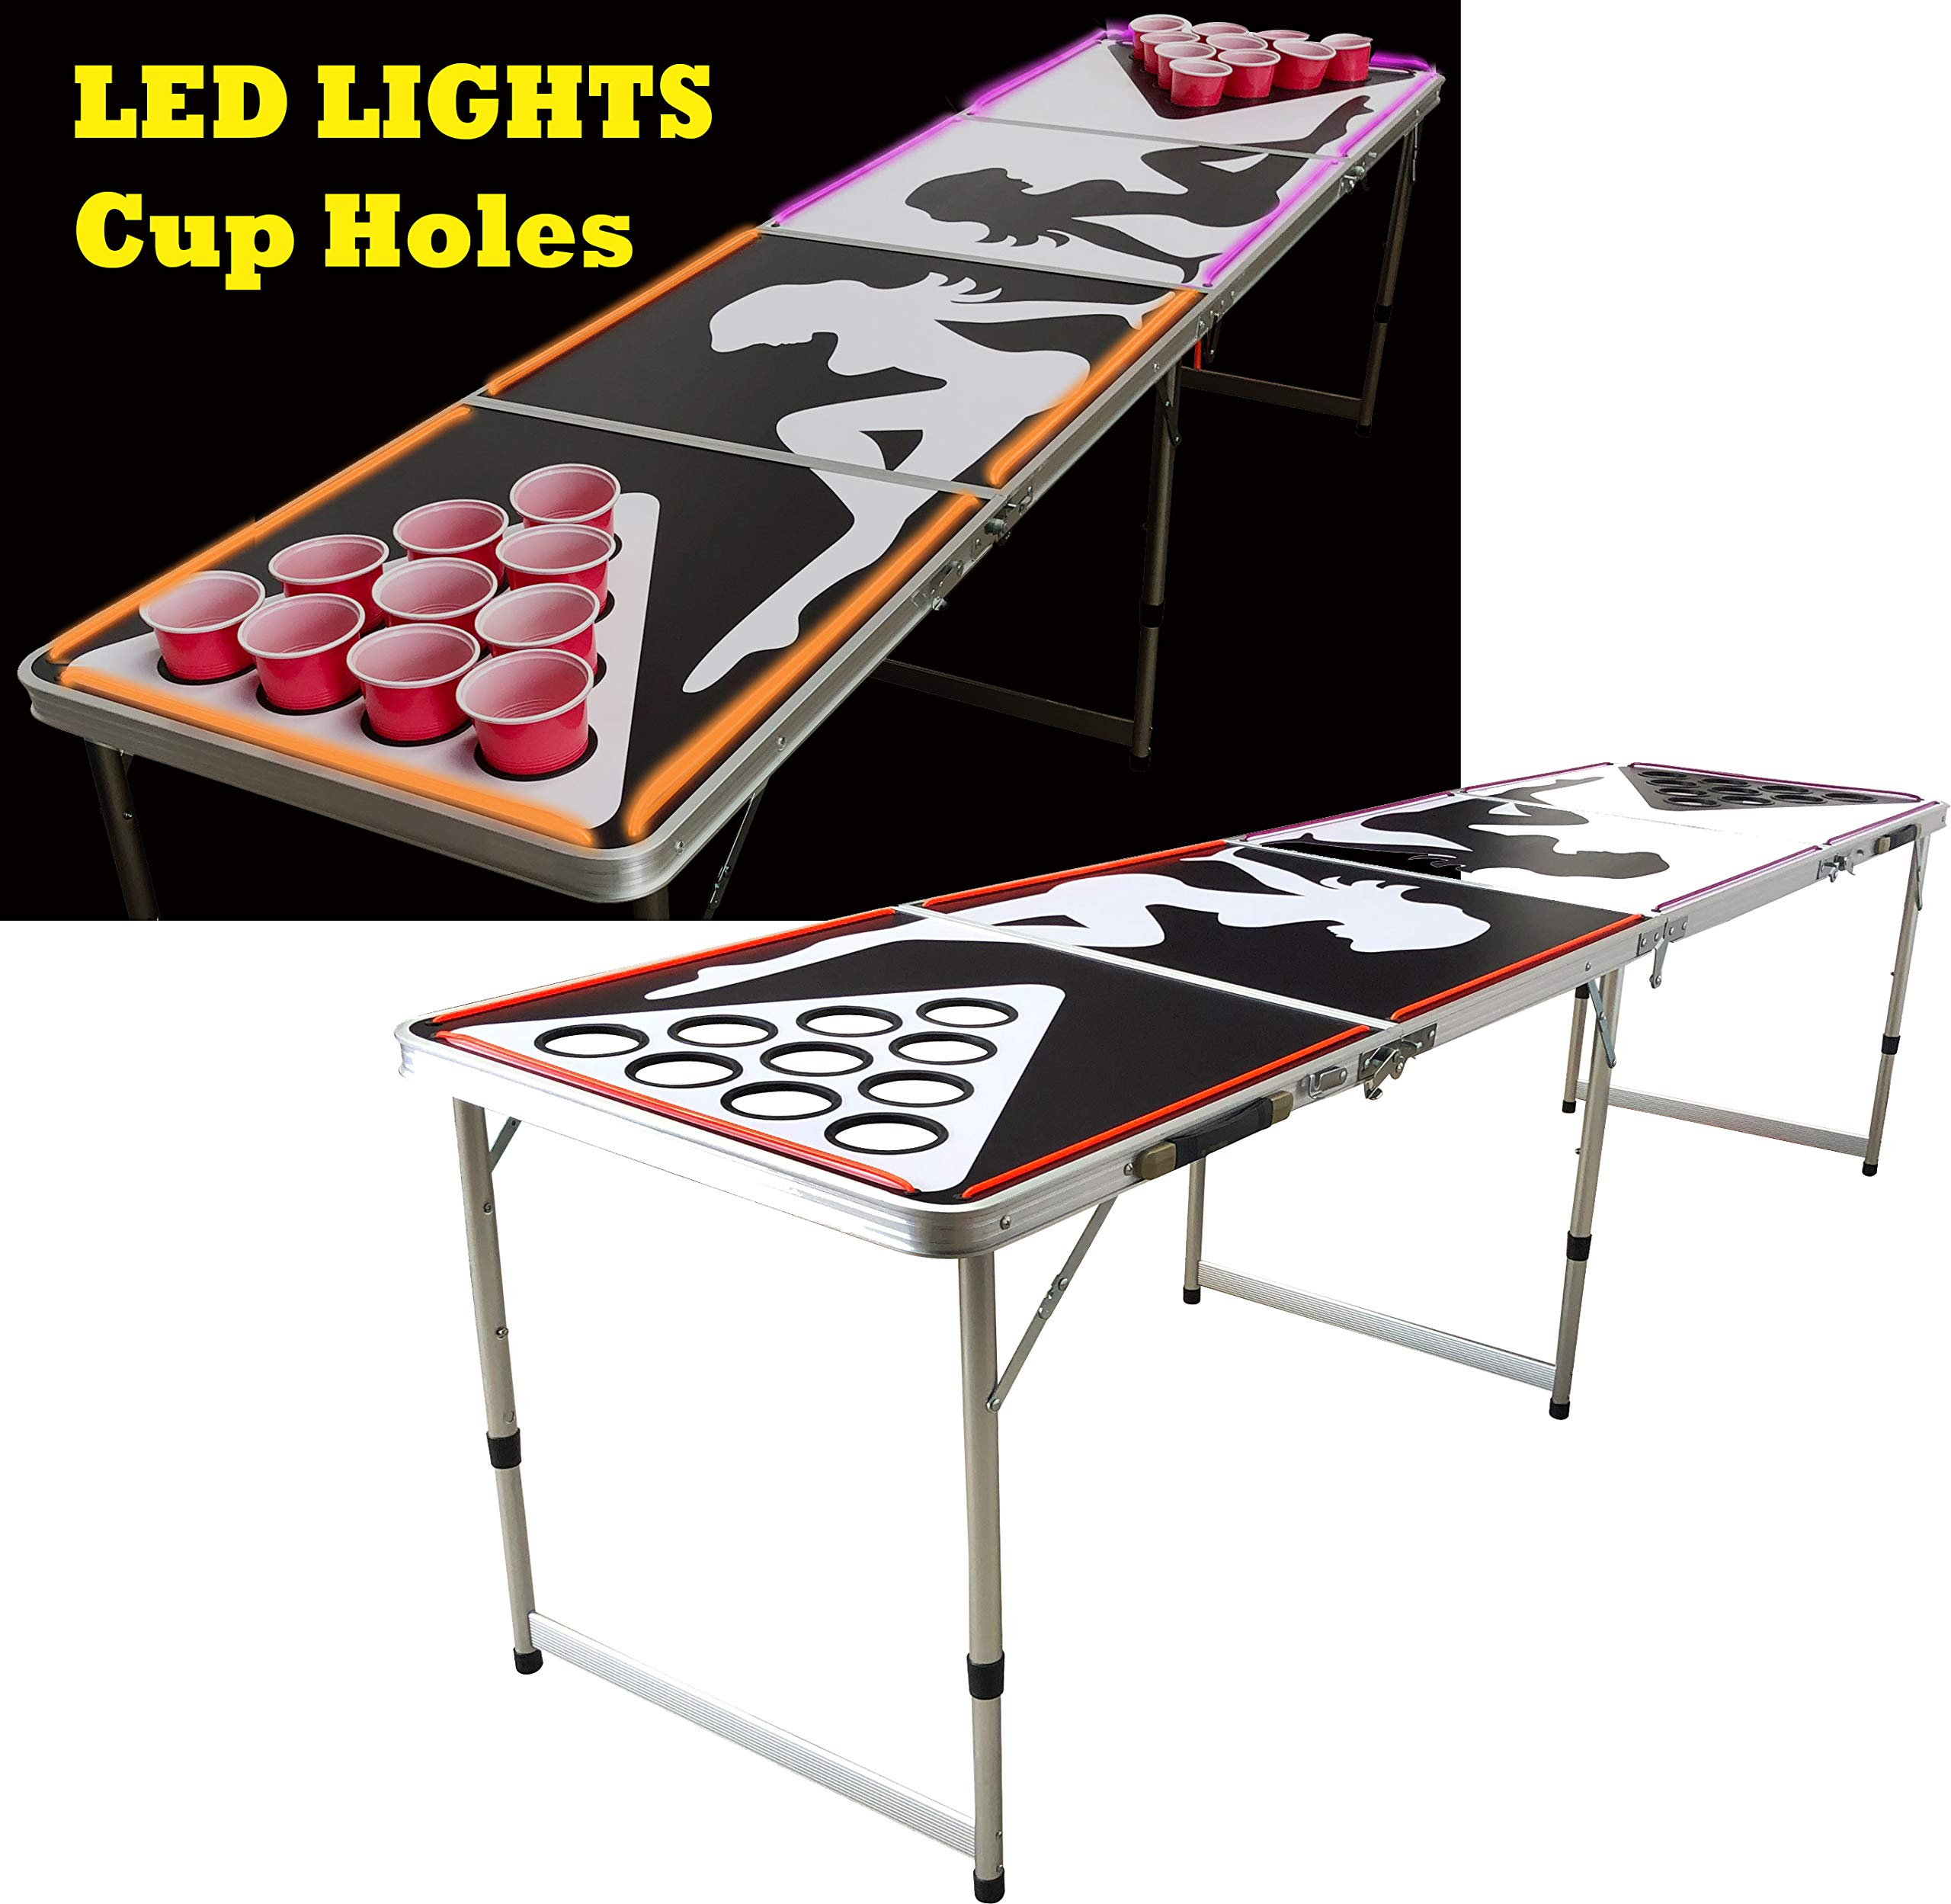 LED Lights Beer Pong Table with Holes for Cups 8' Aluminum Portable Adjustable Folding Indoor Outdoor Tailgate Drinking Party Game Squad Show Girl 01